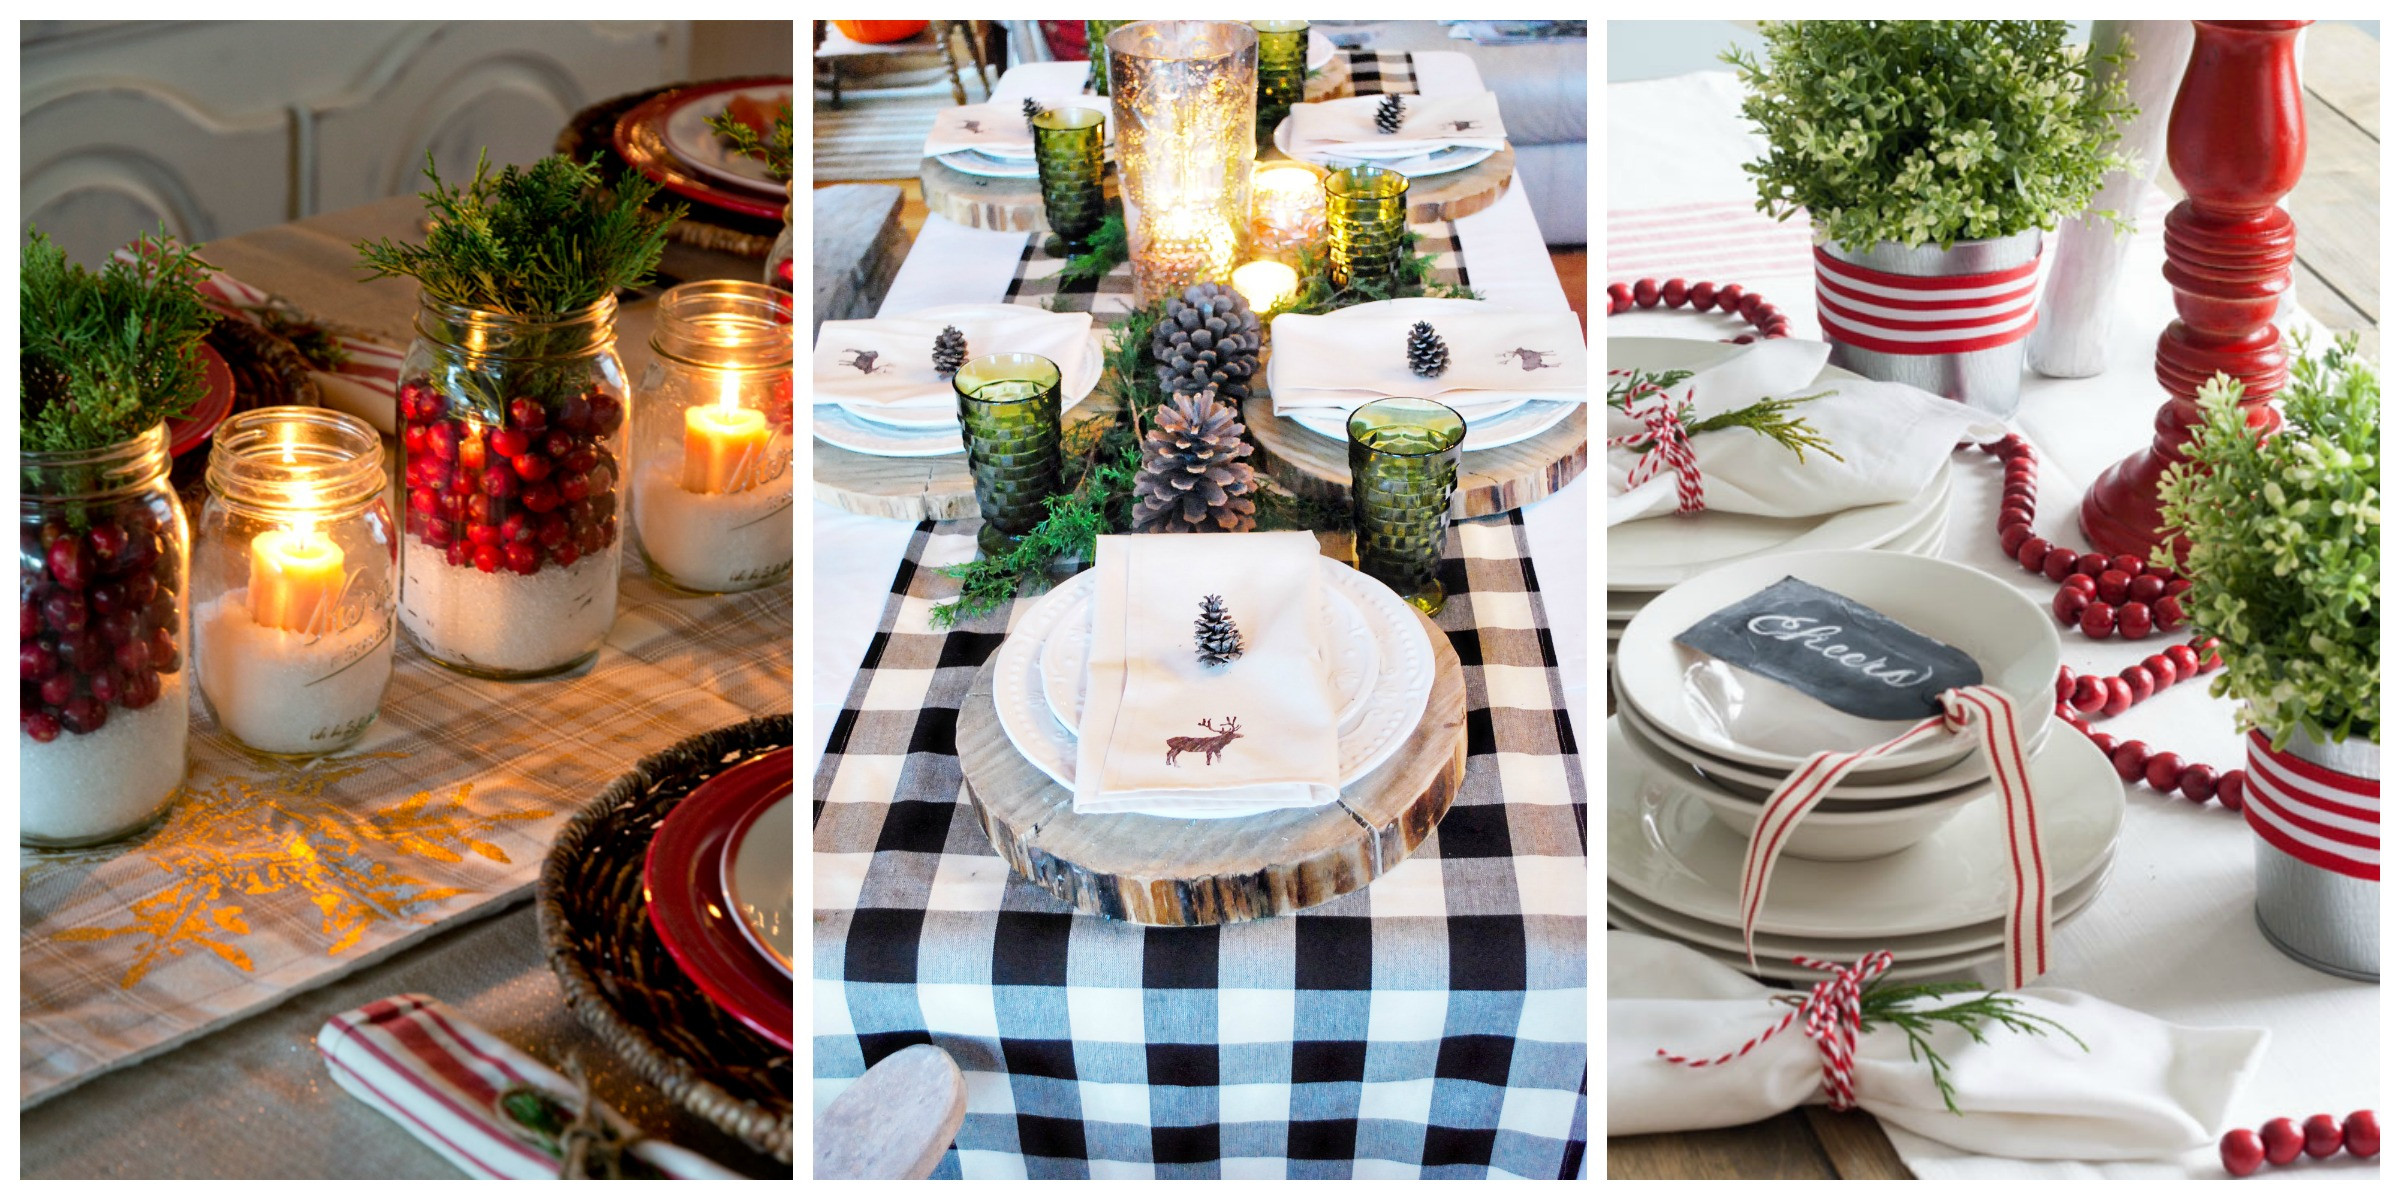 Company Christmas Party Ideas On A Budget  32 Christmas Table Decorations & Centerpieces Ideas for